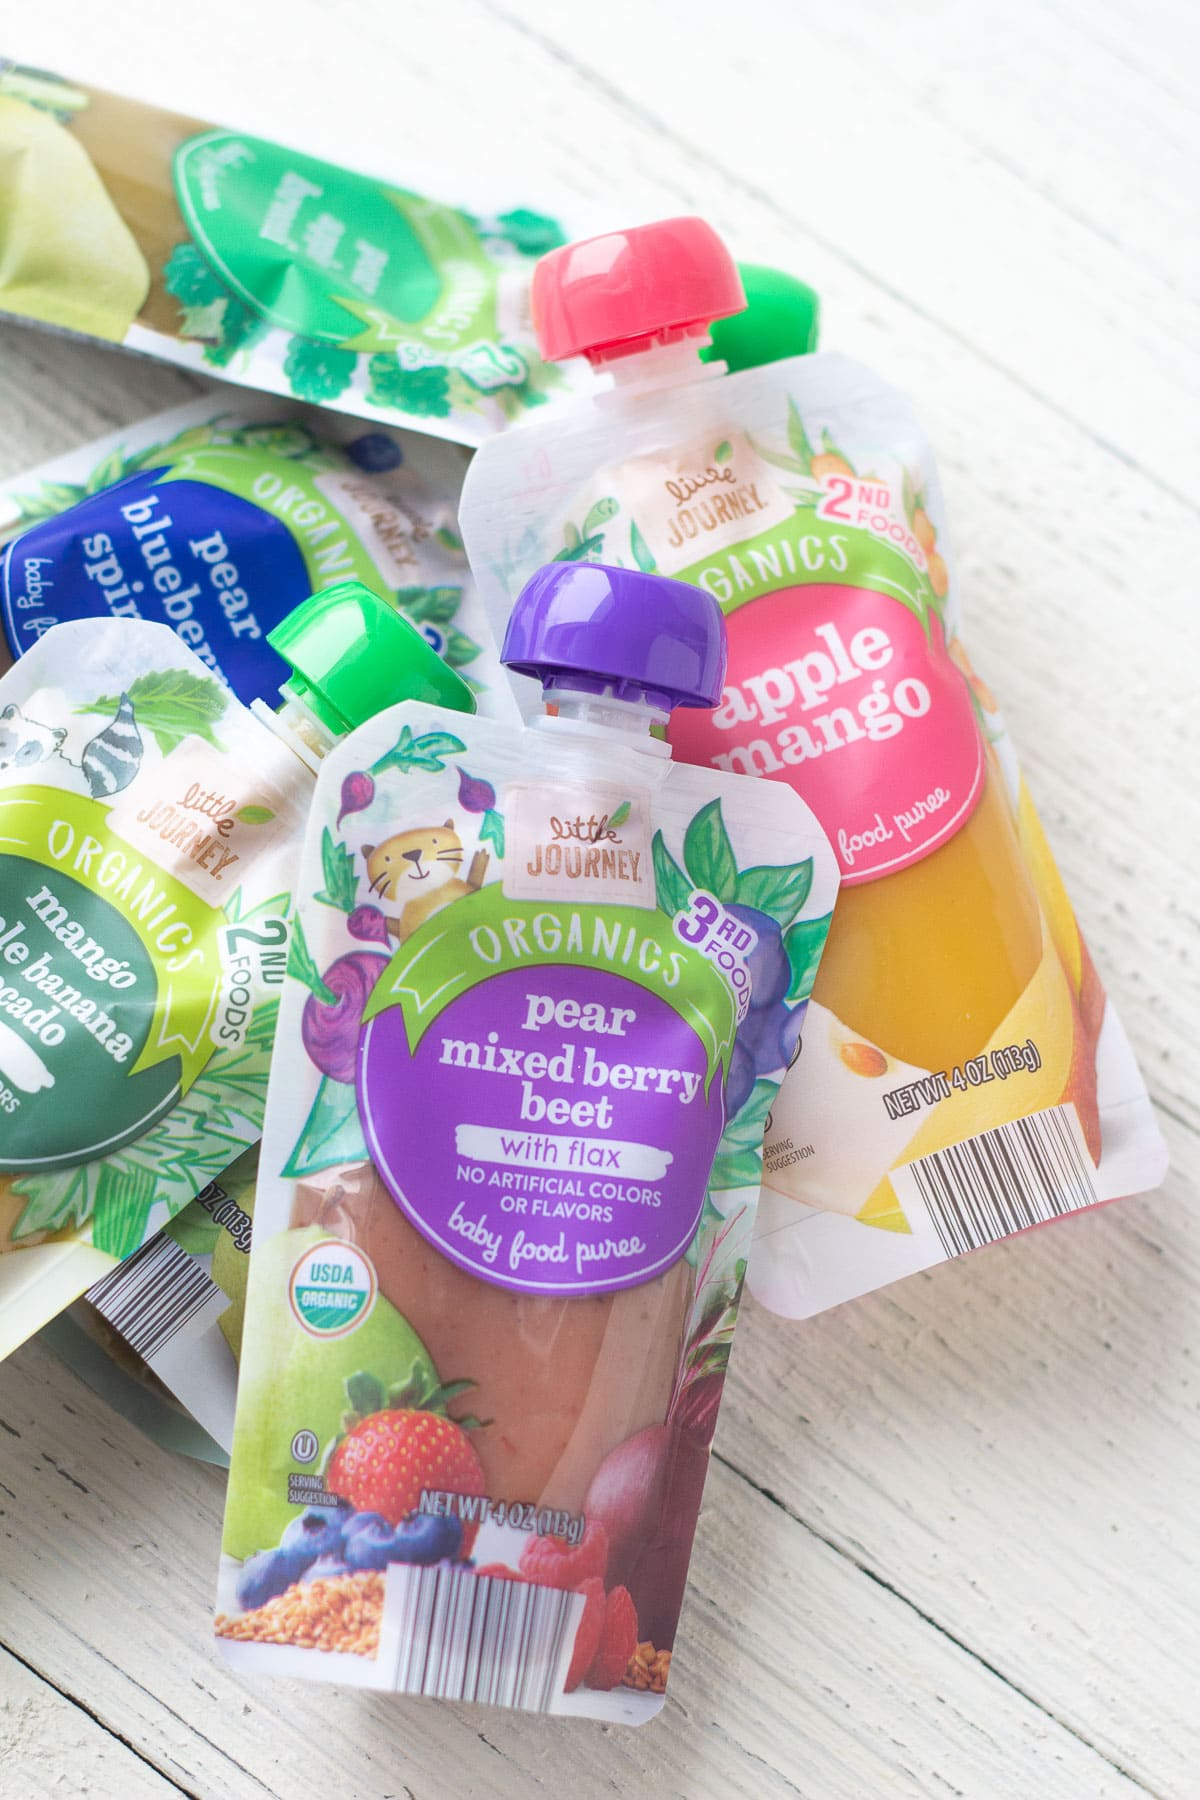 Little Journey Baby Food Pouches.